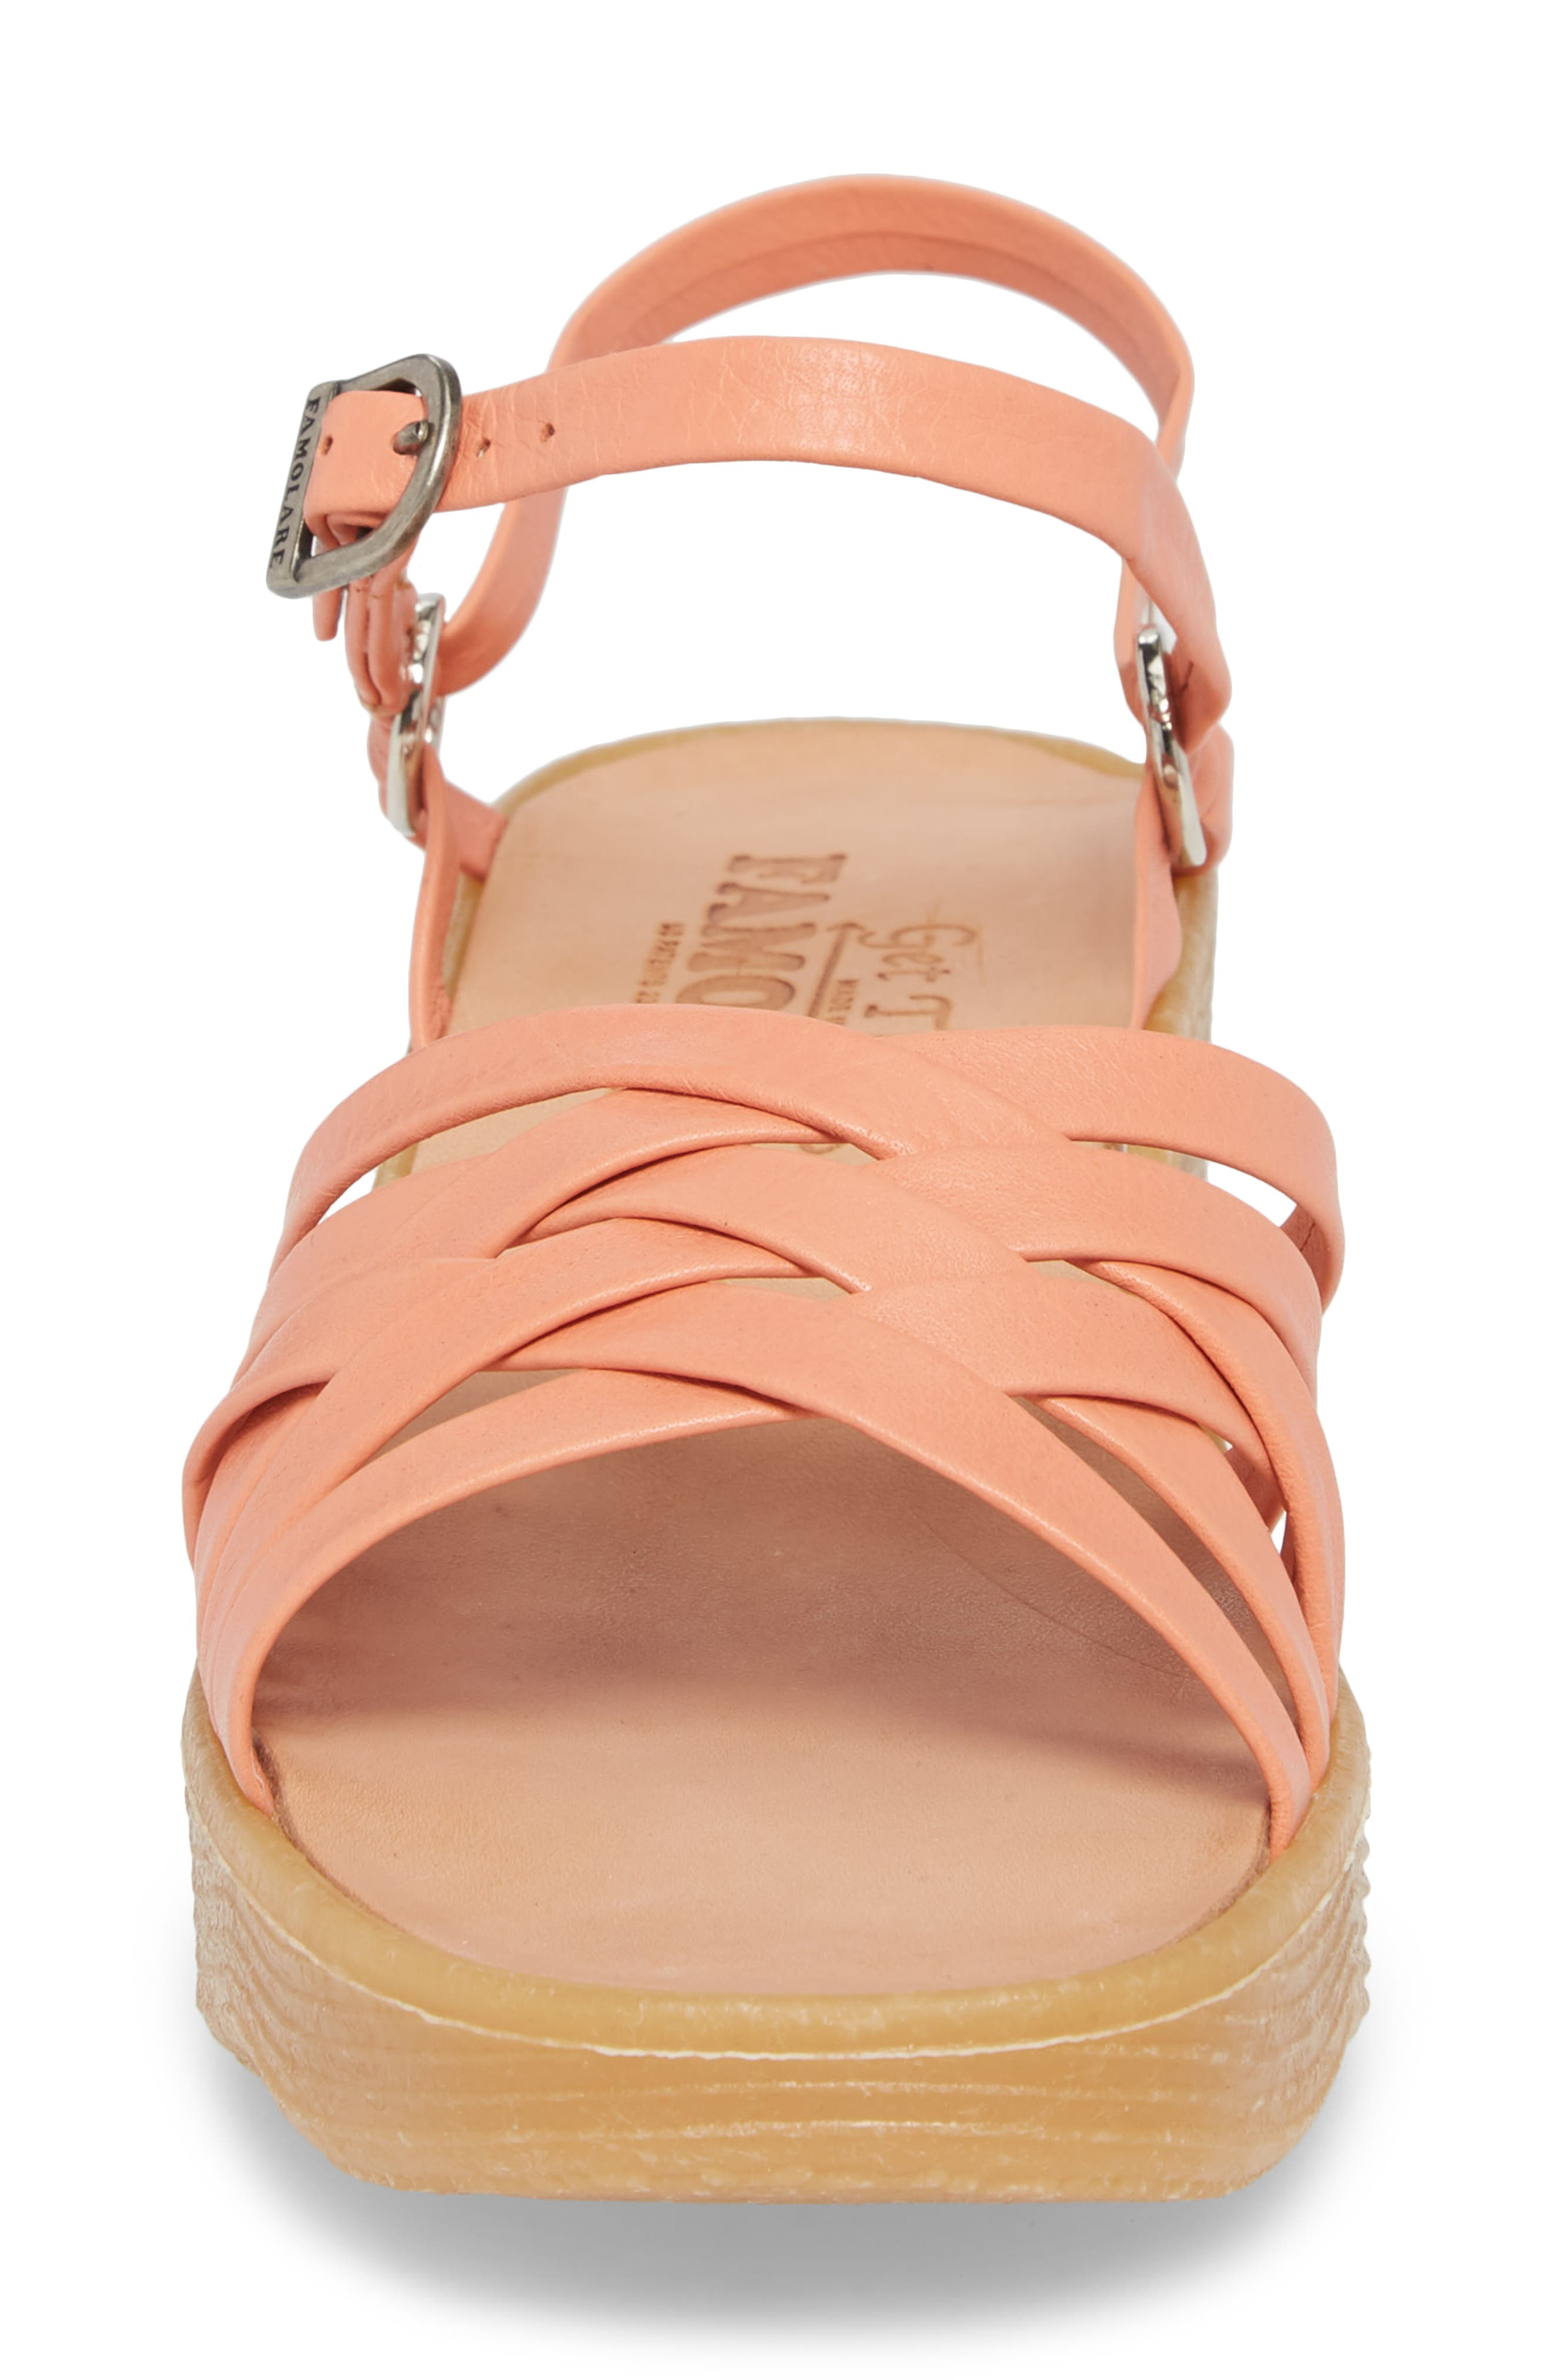 Strappy Camper Sandal,                             Alternate thumbnail 4, color,                             Salmon Leather